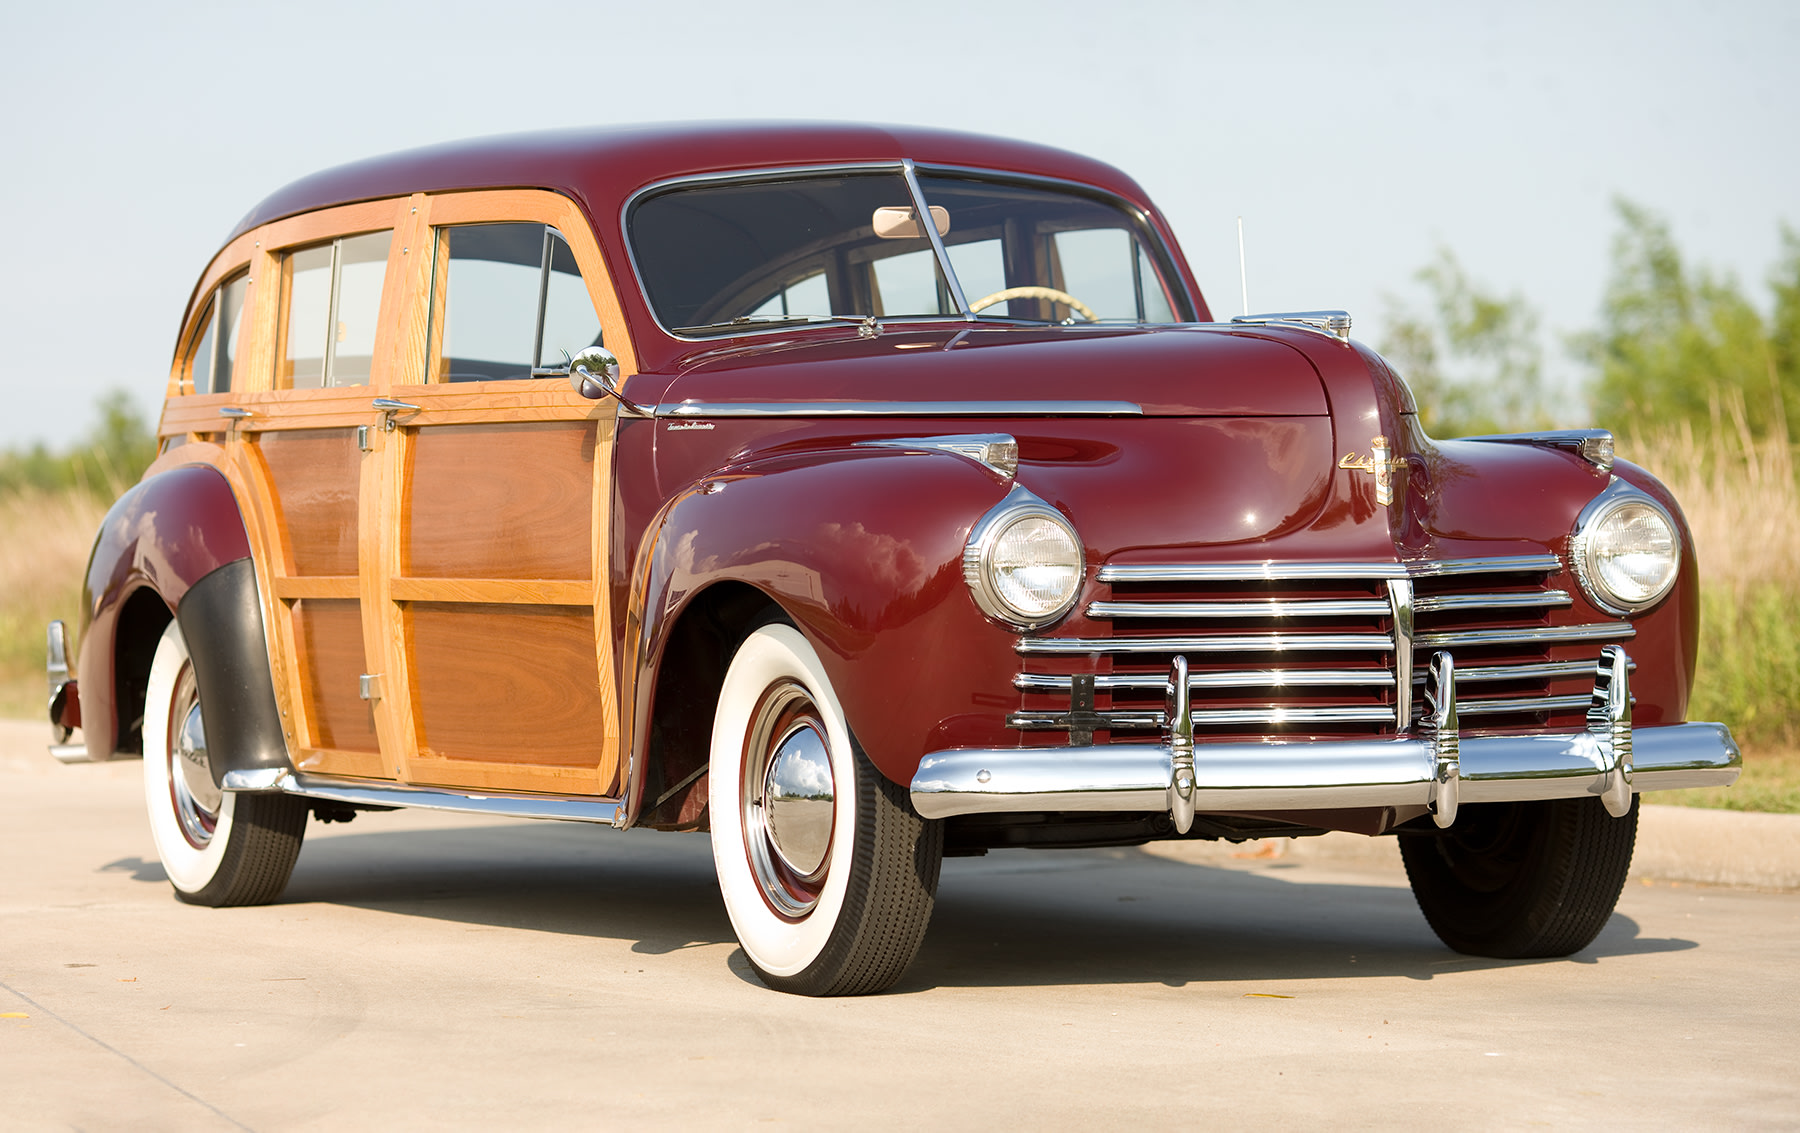 1941 Chrysler Town & Country Barrel-Back Station Wagon